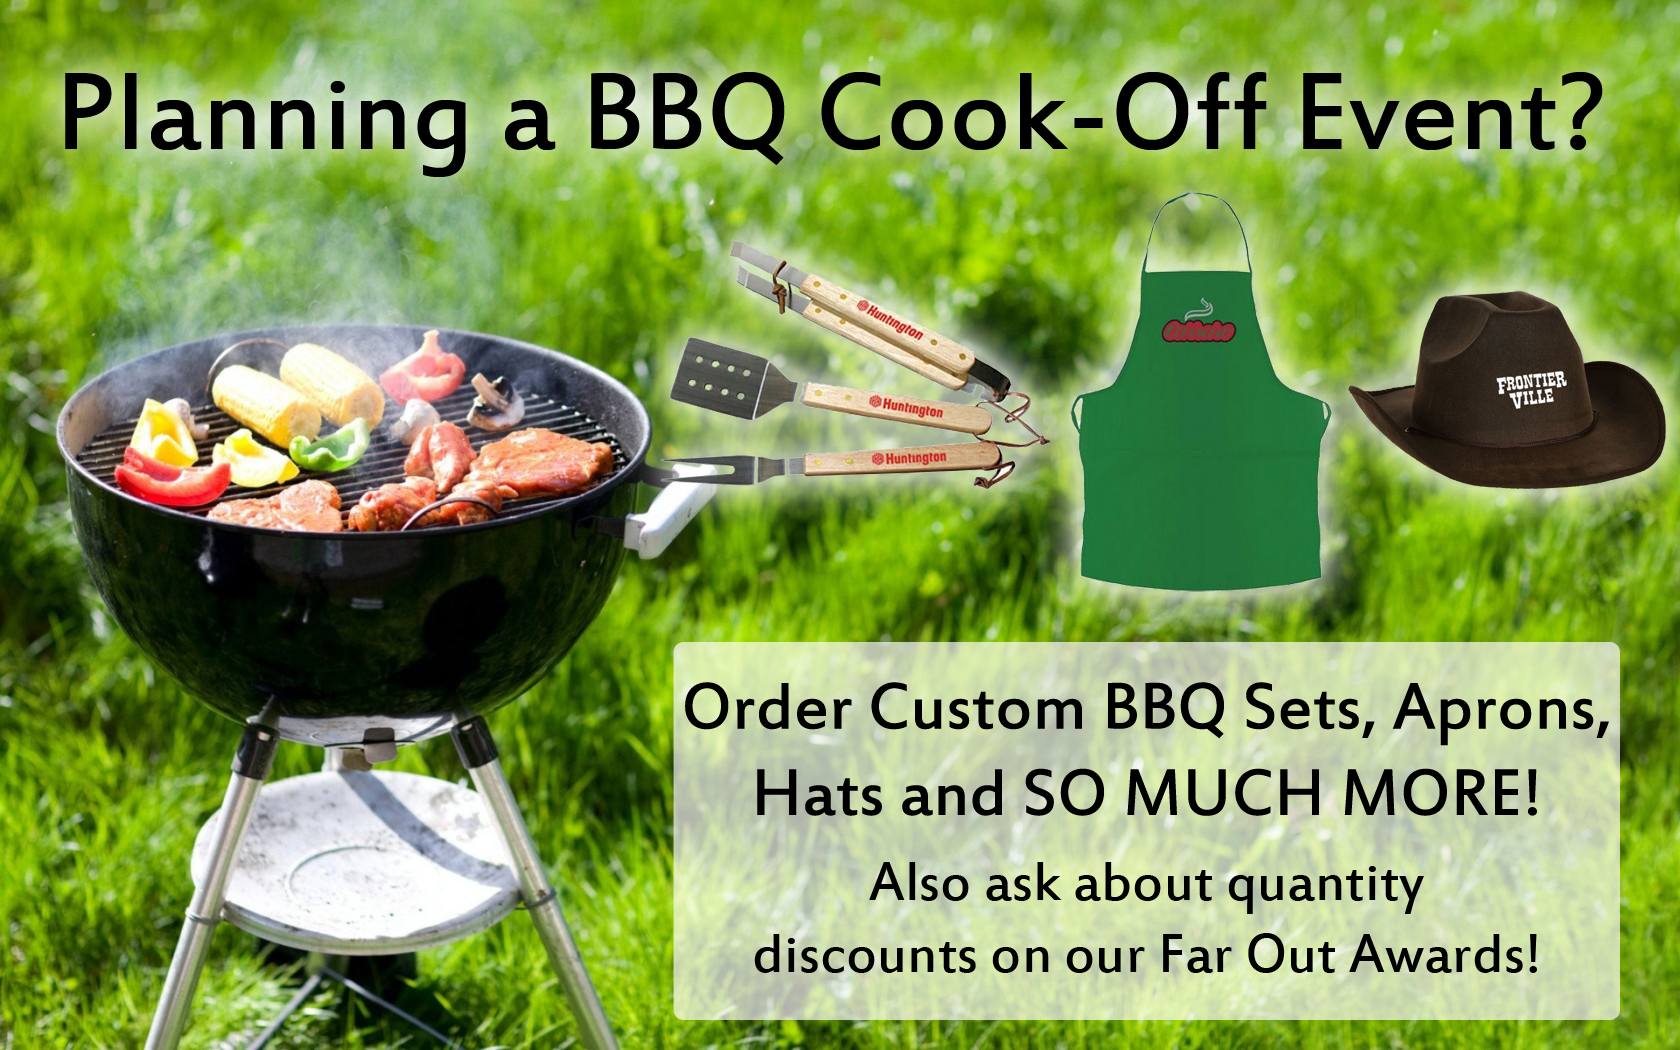 bbq-bottom-banner-copy.jpg